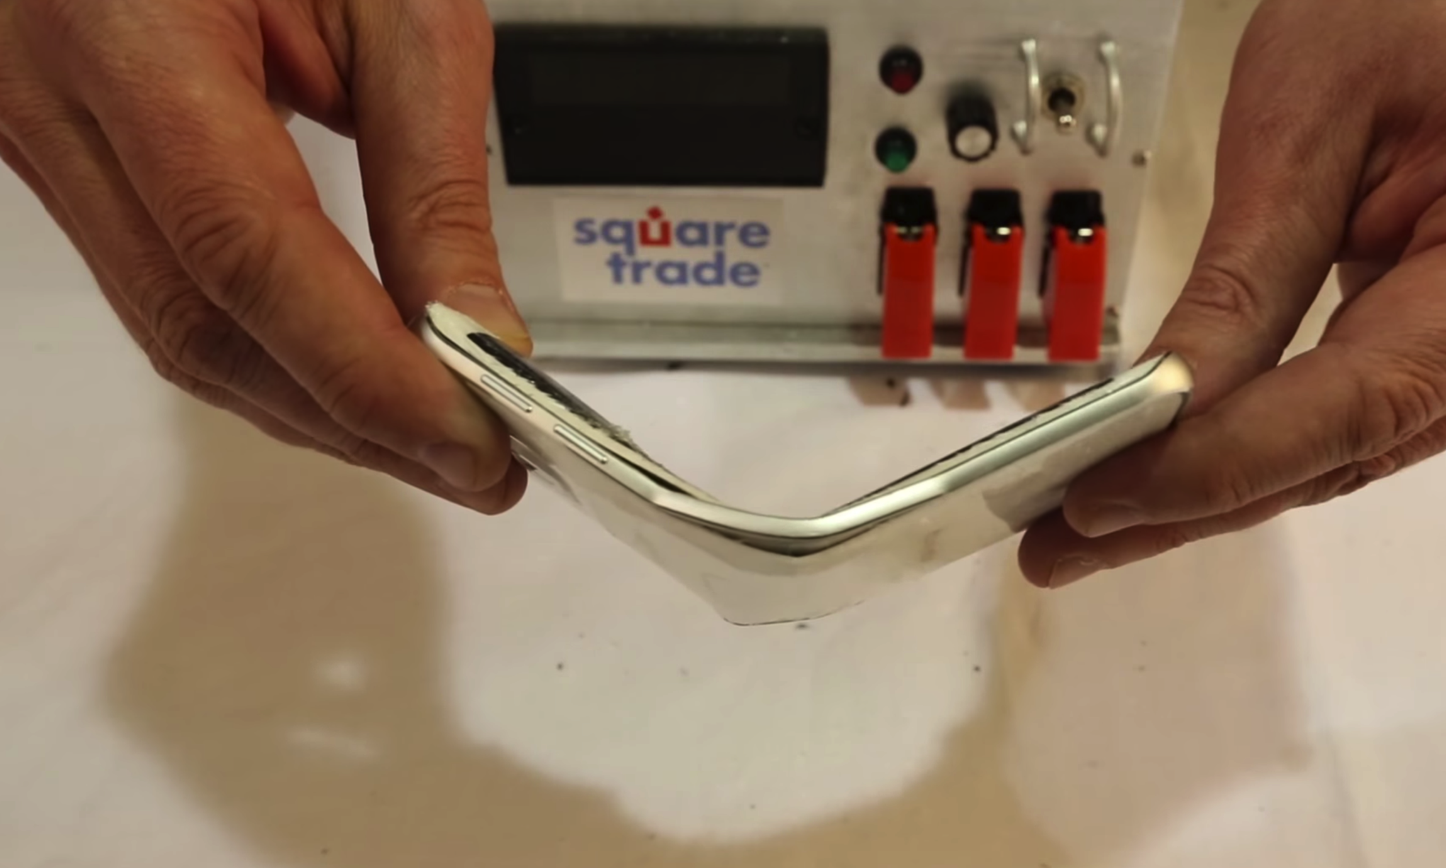 Galaxy S6 Edge is Bendable